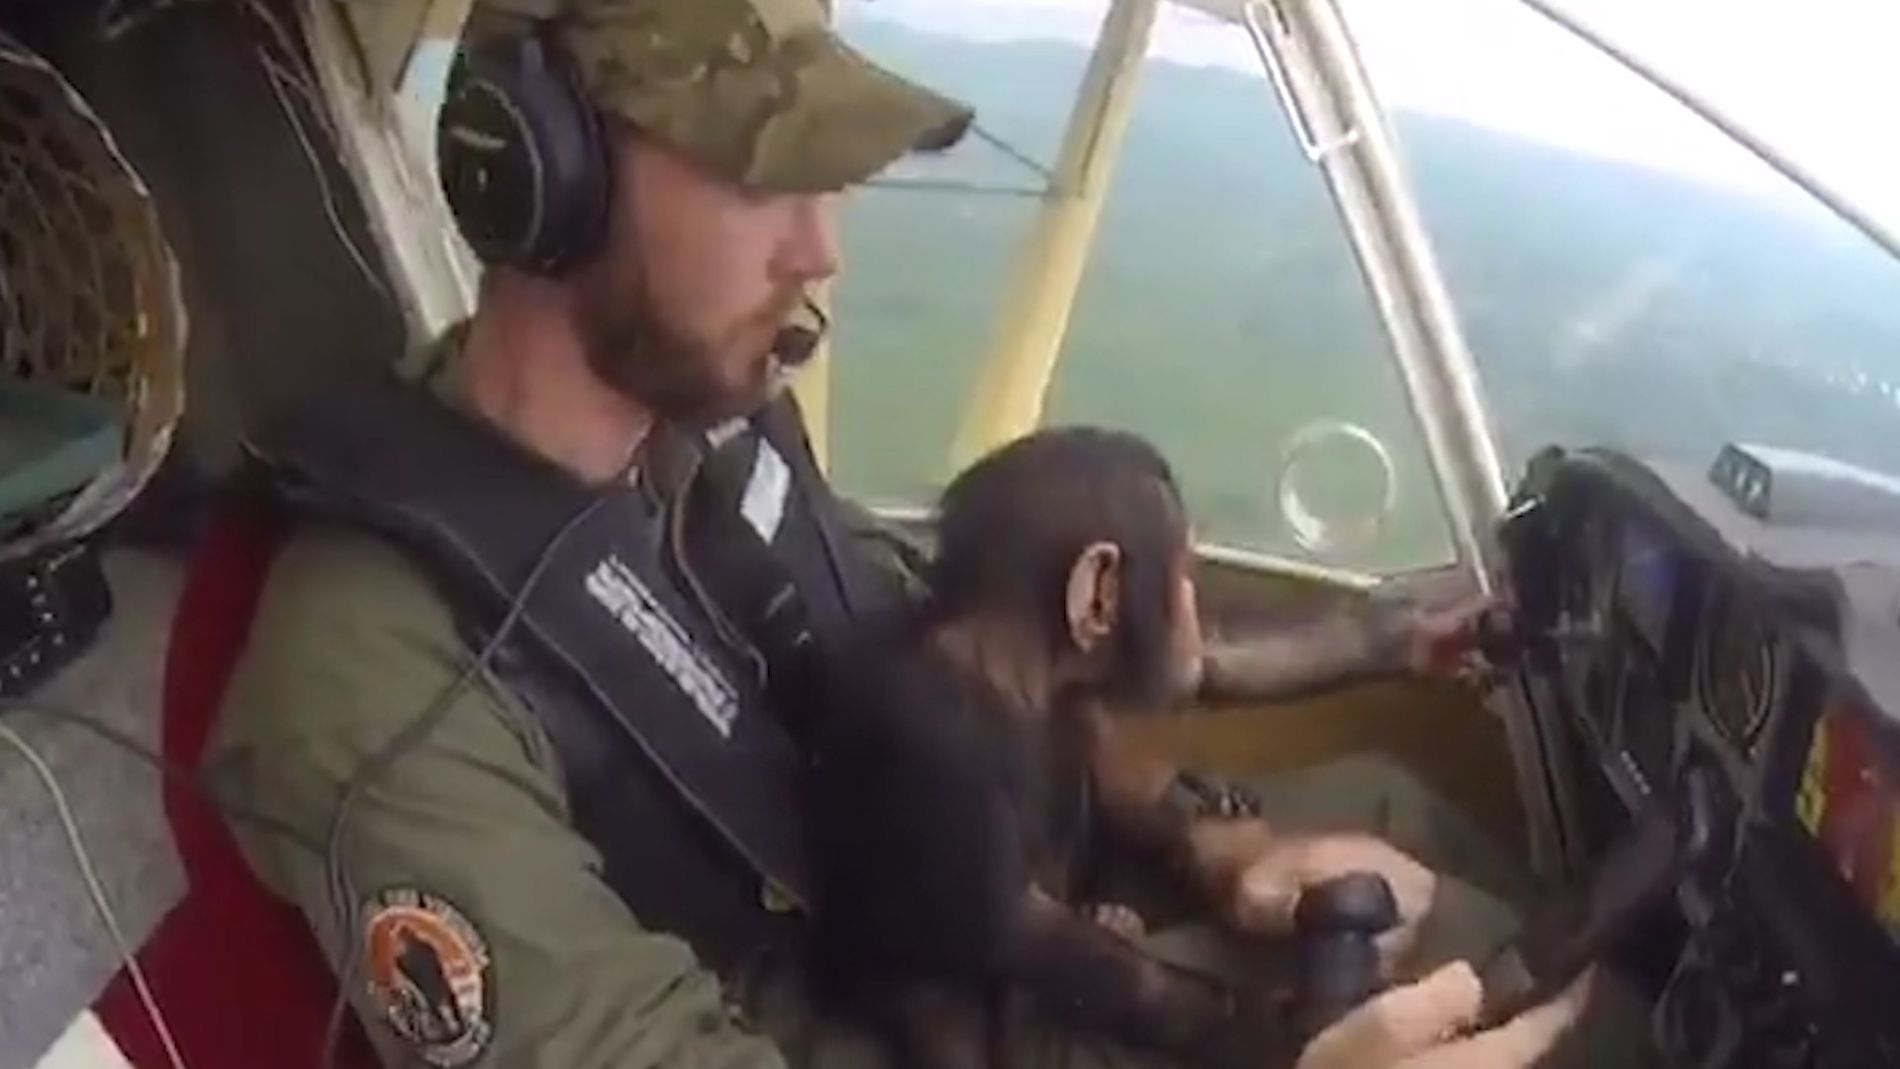 Baby Chimpanzee sits at the controls of an aircraft with the pilot